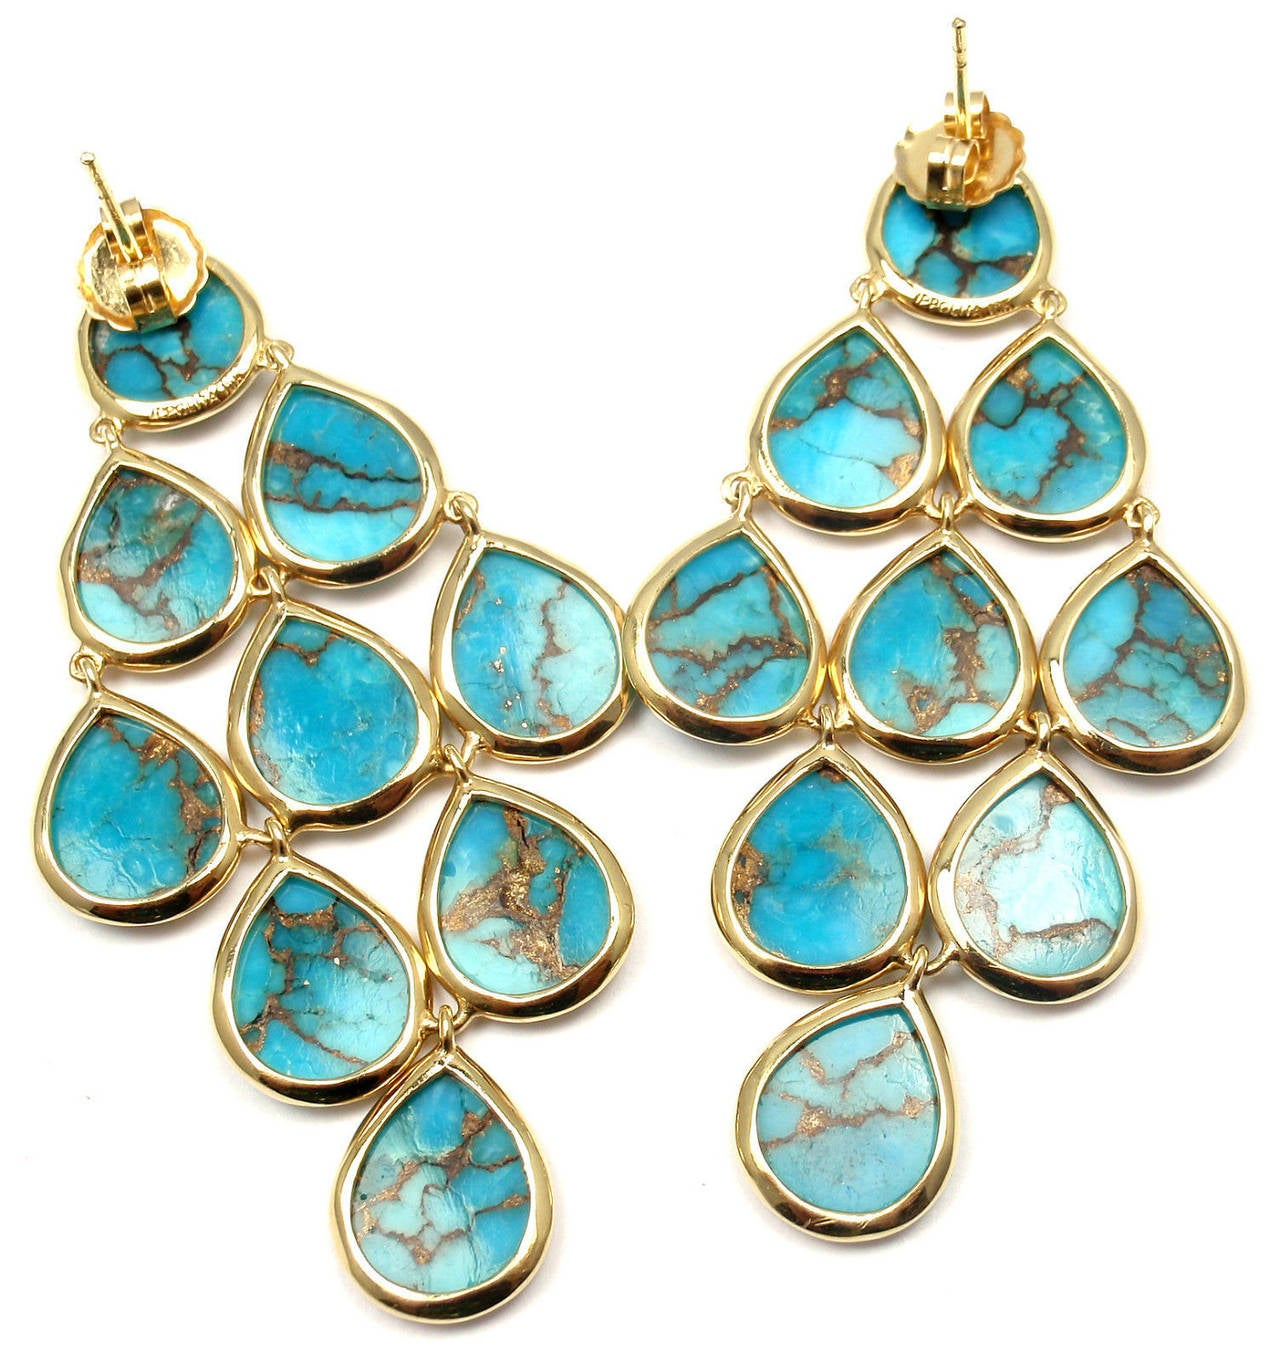 18k Yellow Gold Polished Rock Candy Cascade Turquoise Drop Yellow Gold Earrings by Ippolita. With 18 pear shaped smooth Turquoise stones.  Details:  Measurements: 22mm x 20mm Weight: 9 grams Stamped Hallmarks: Ippolita 18k *Free Shipping